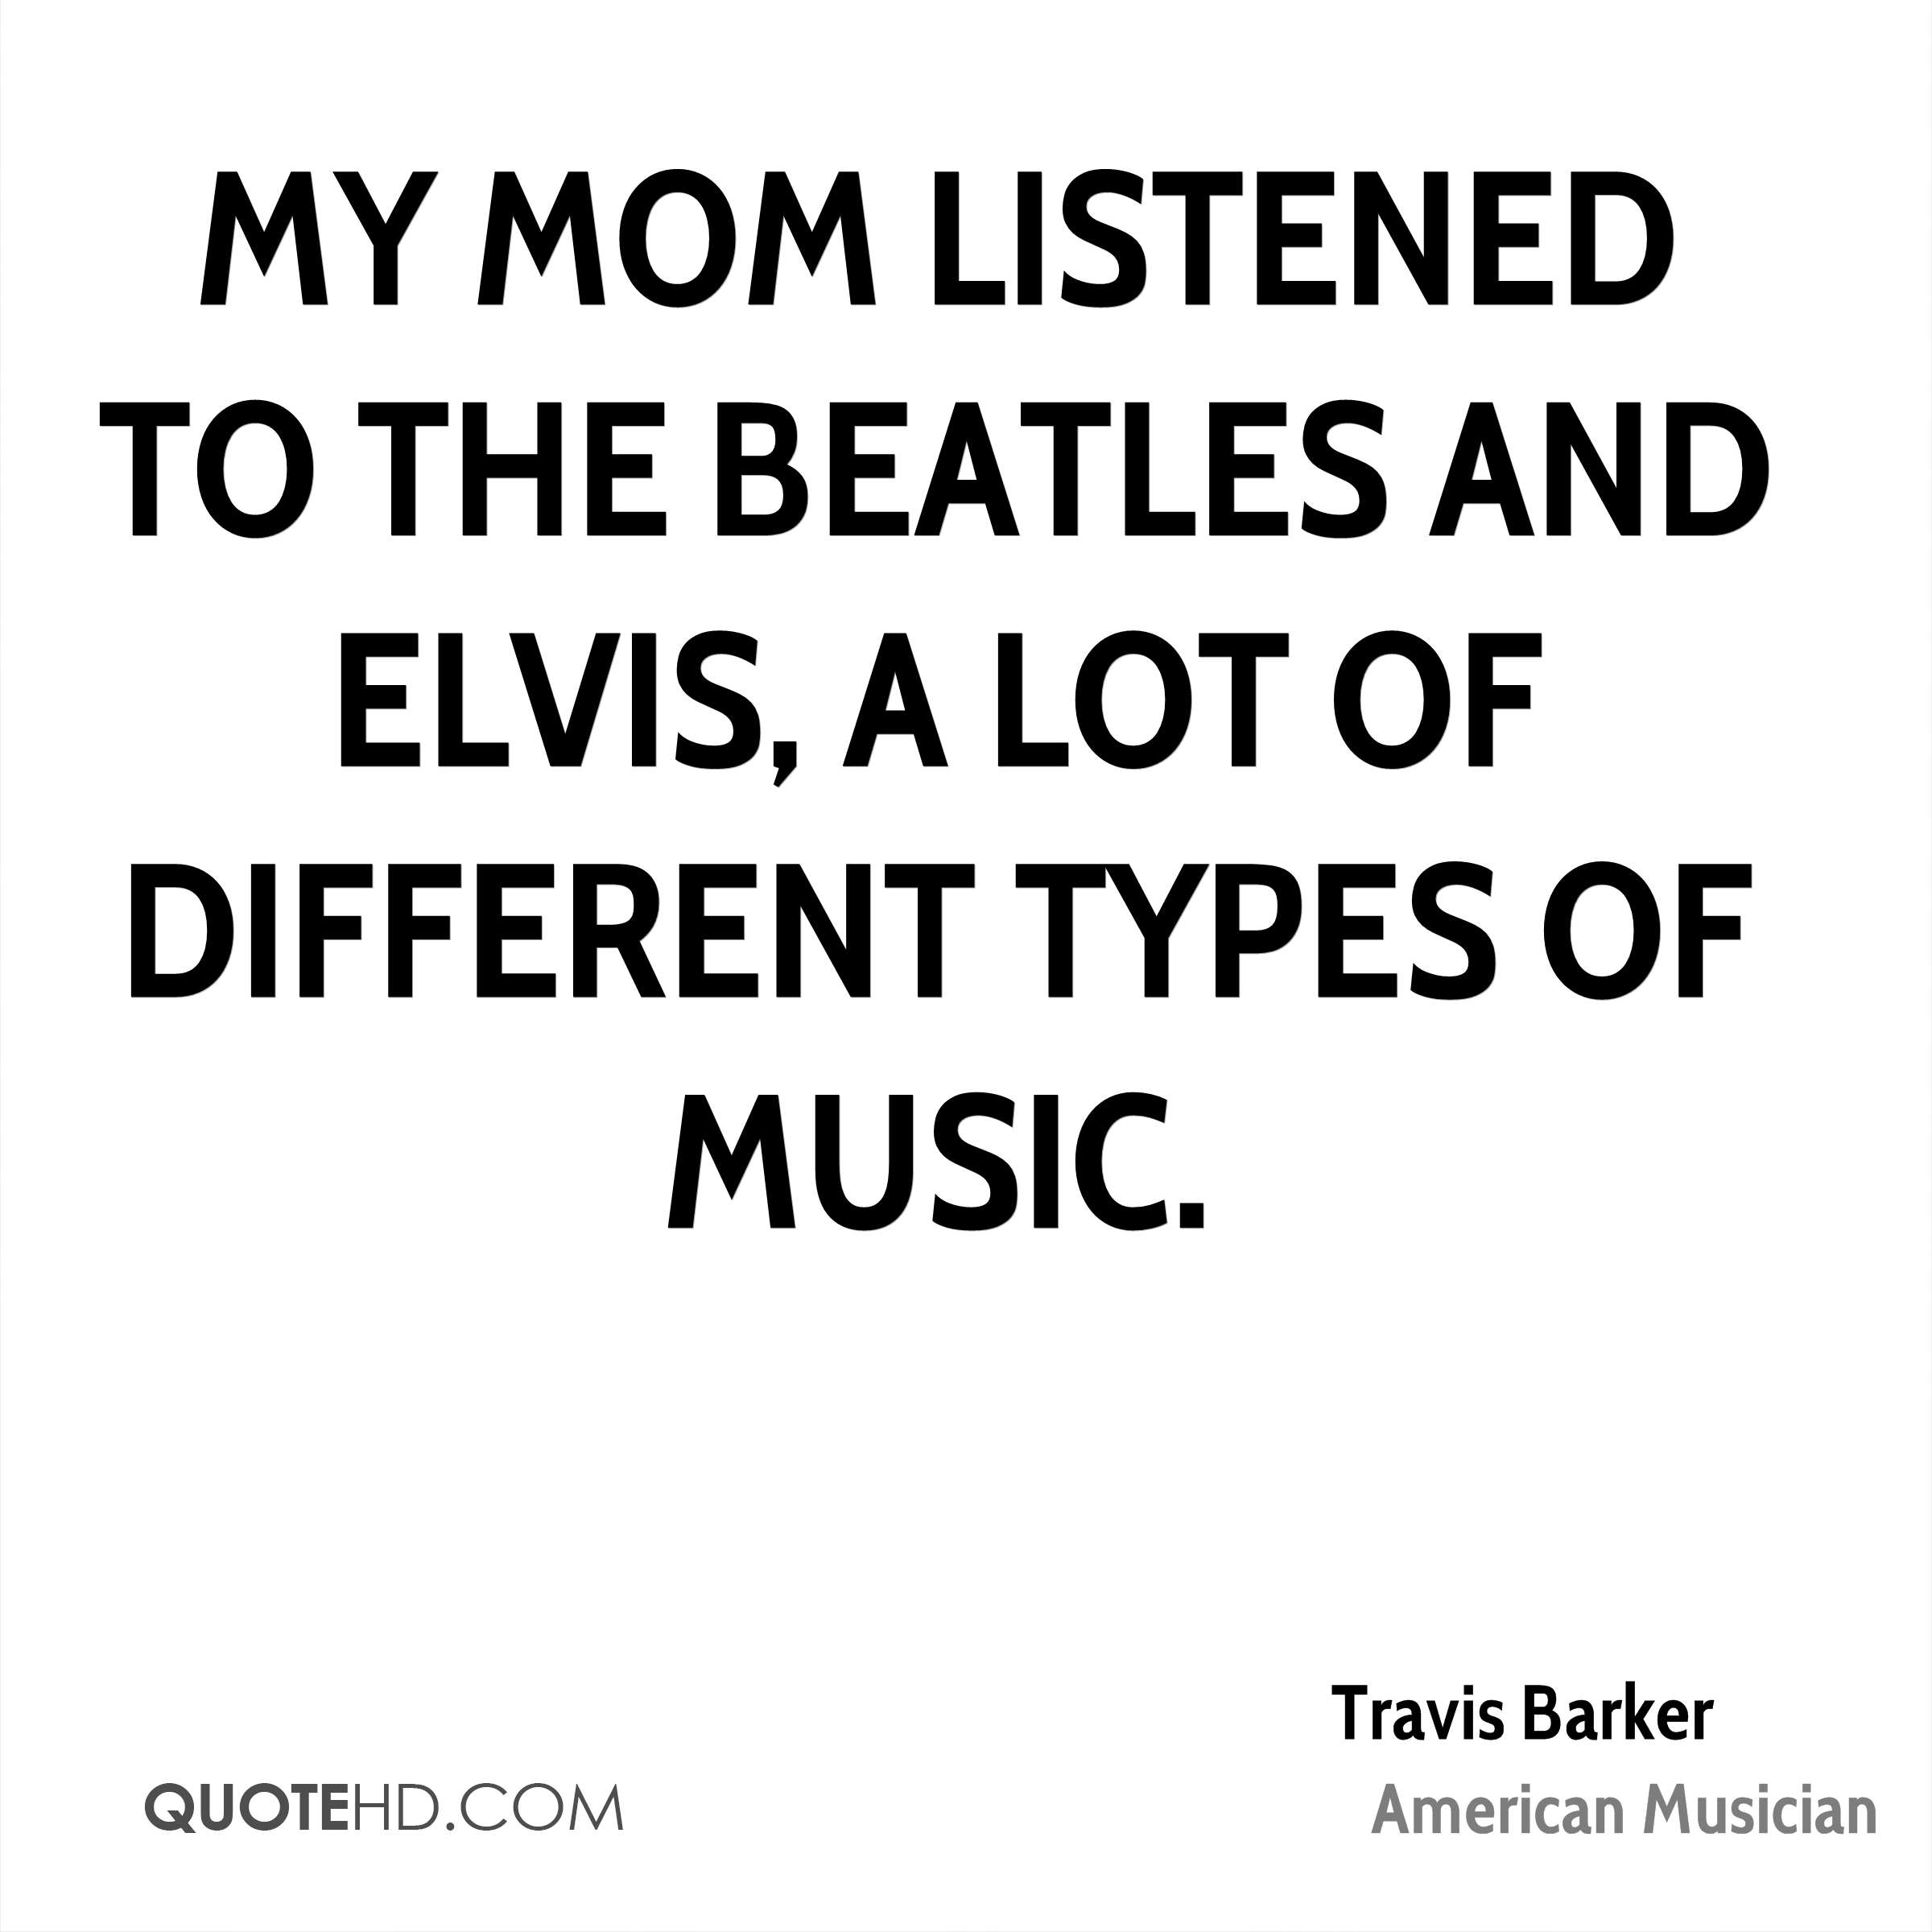 My mom listened to the Beatles and Elvis, a lot of different types of music.